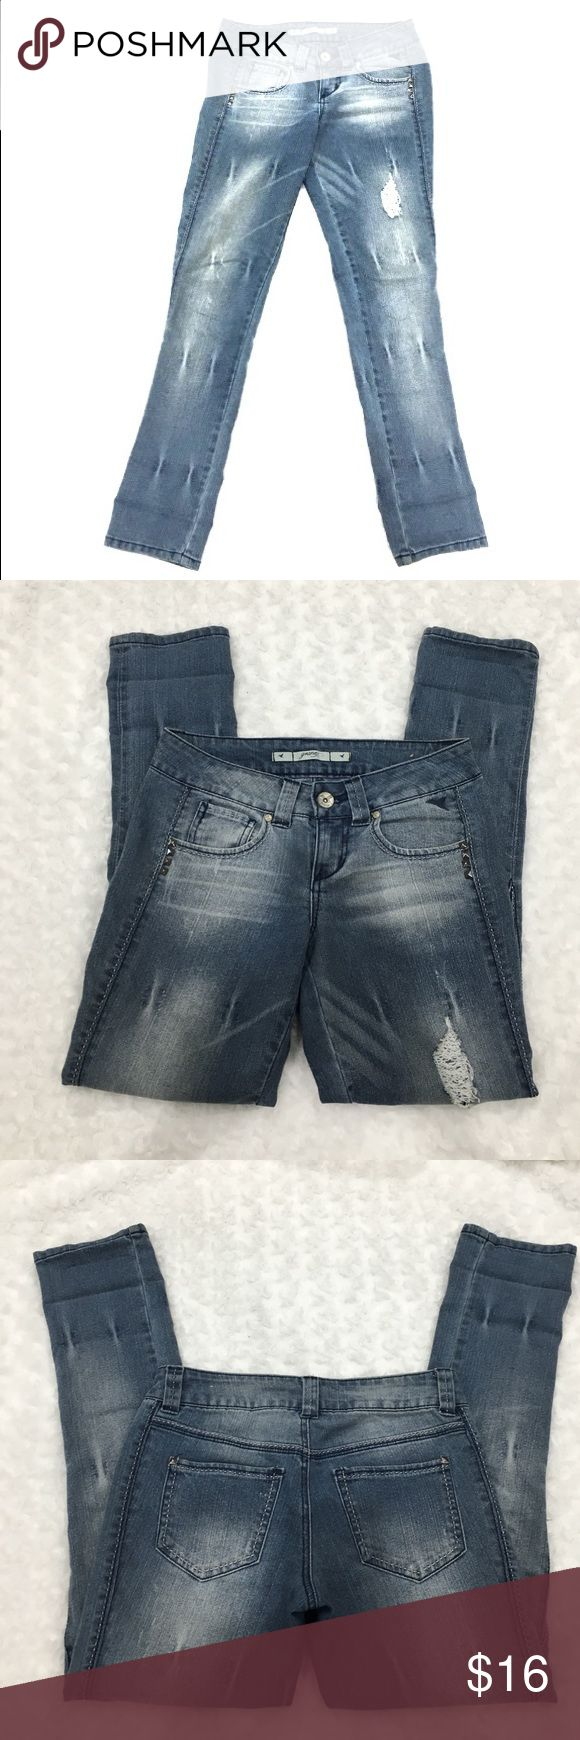 Jean Capris Gently worn. Bought from Macy's. From smoke free and pet free home. Grane Jeans